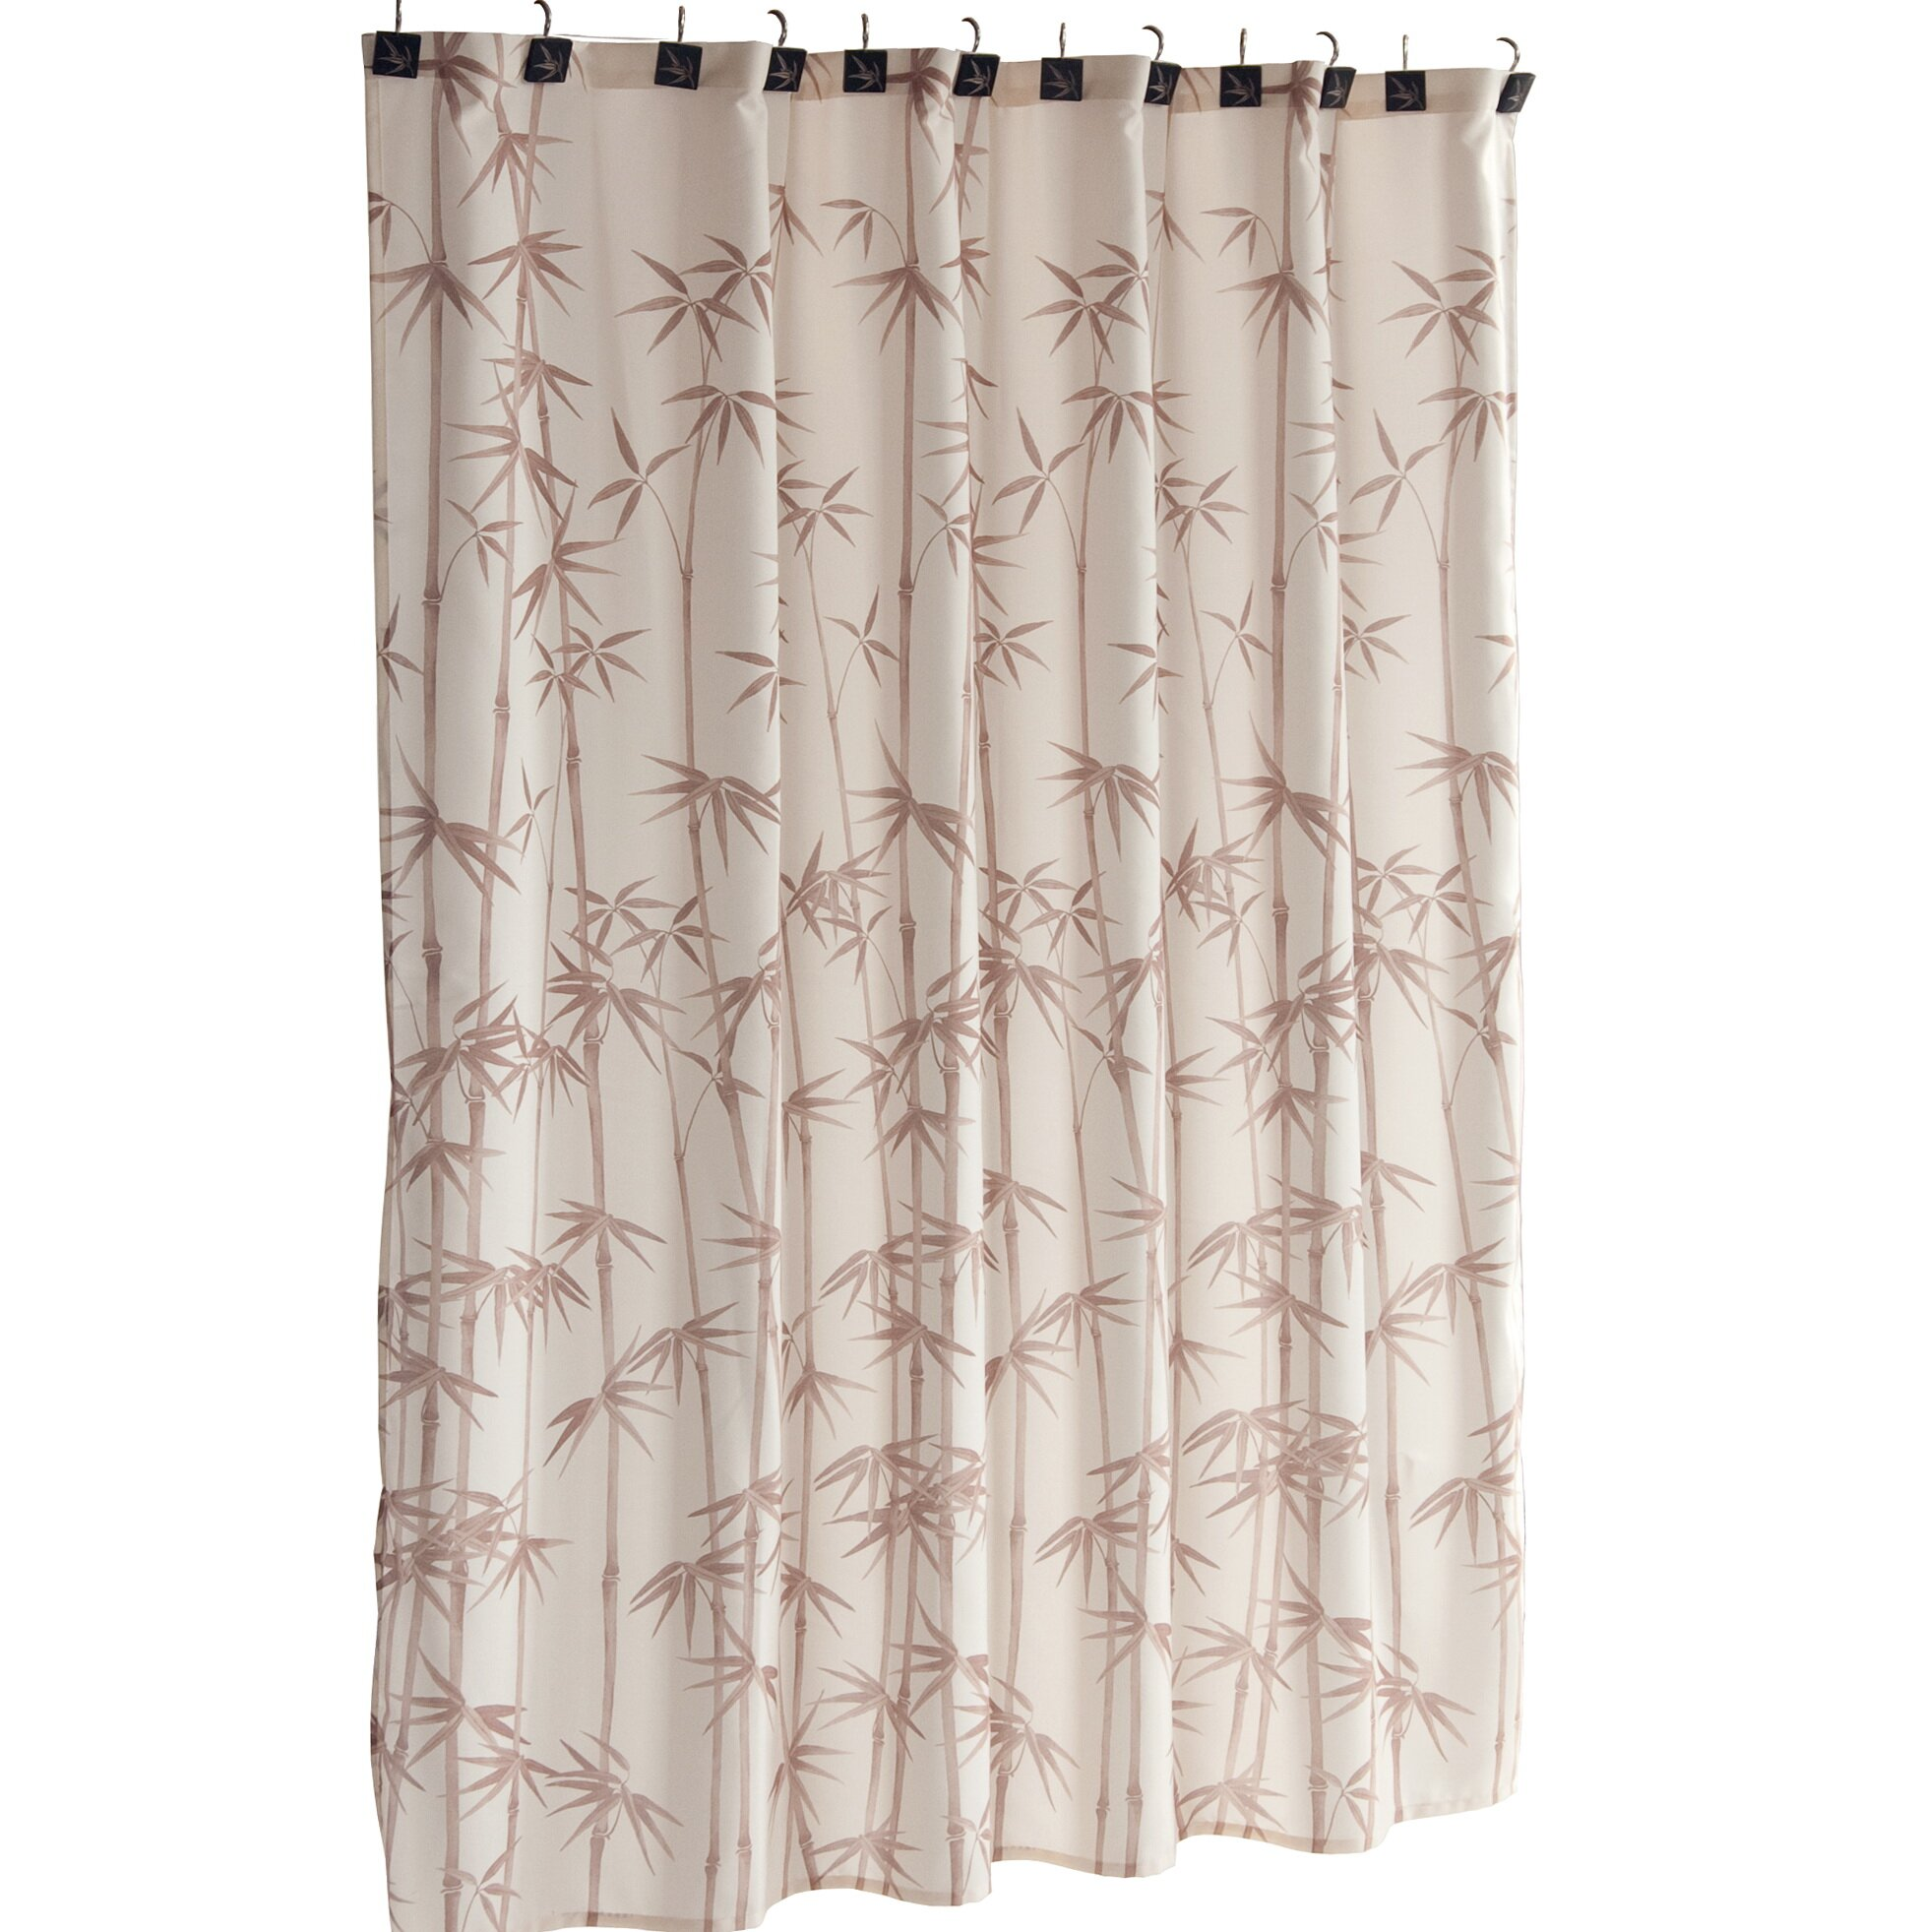 Walmart Shower Curtain | Discount Fabric Shower Curtains | Paris Shower Curtain Walmart